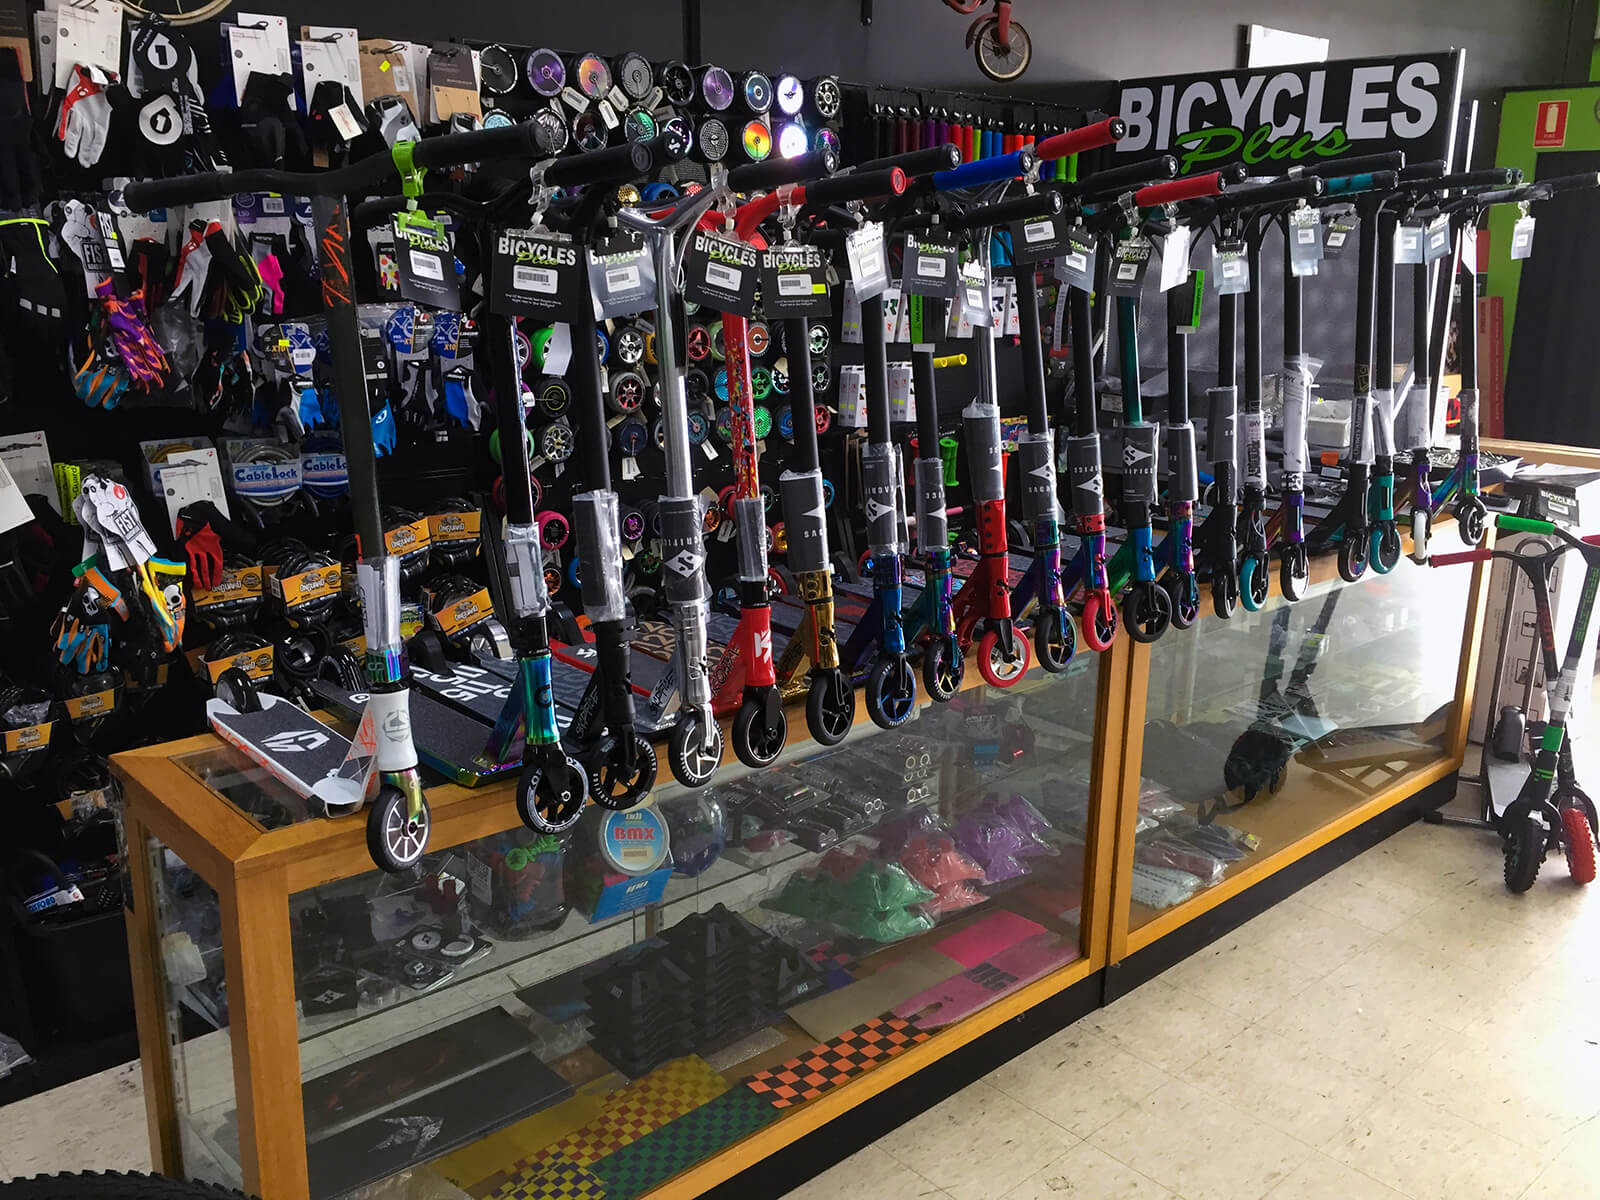 Bicycles Plus Scooters